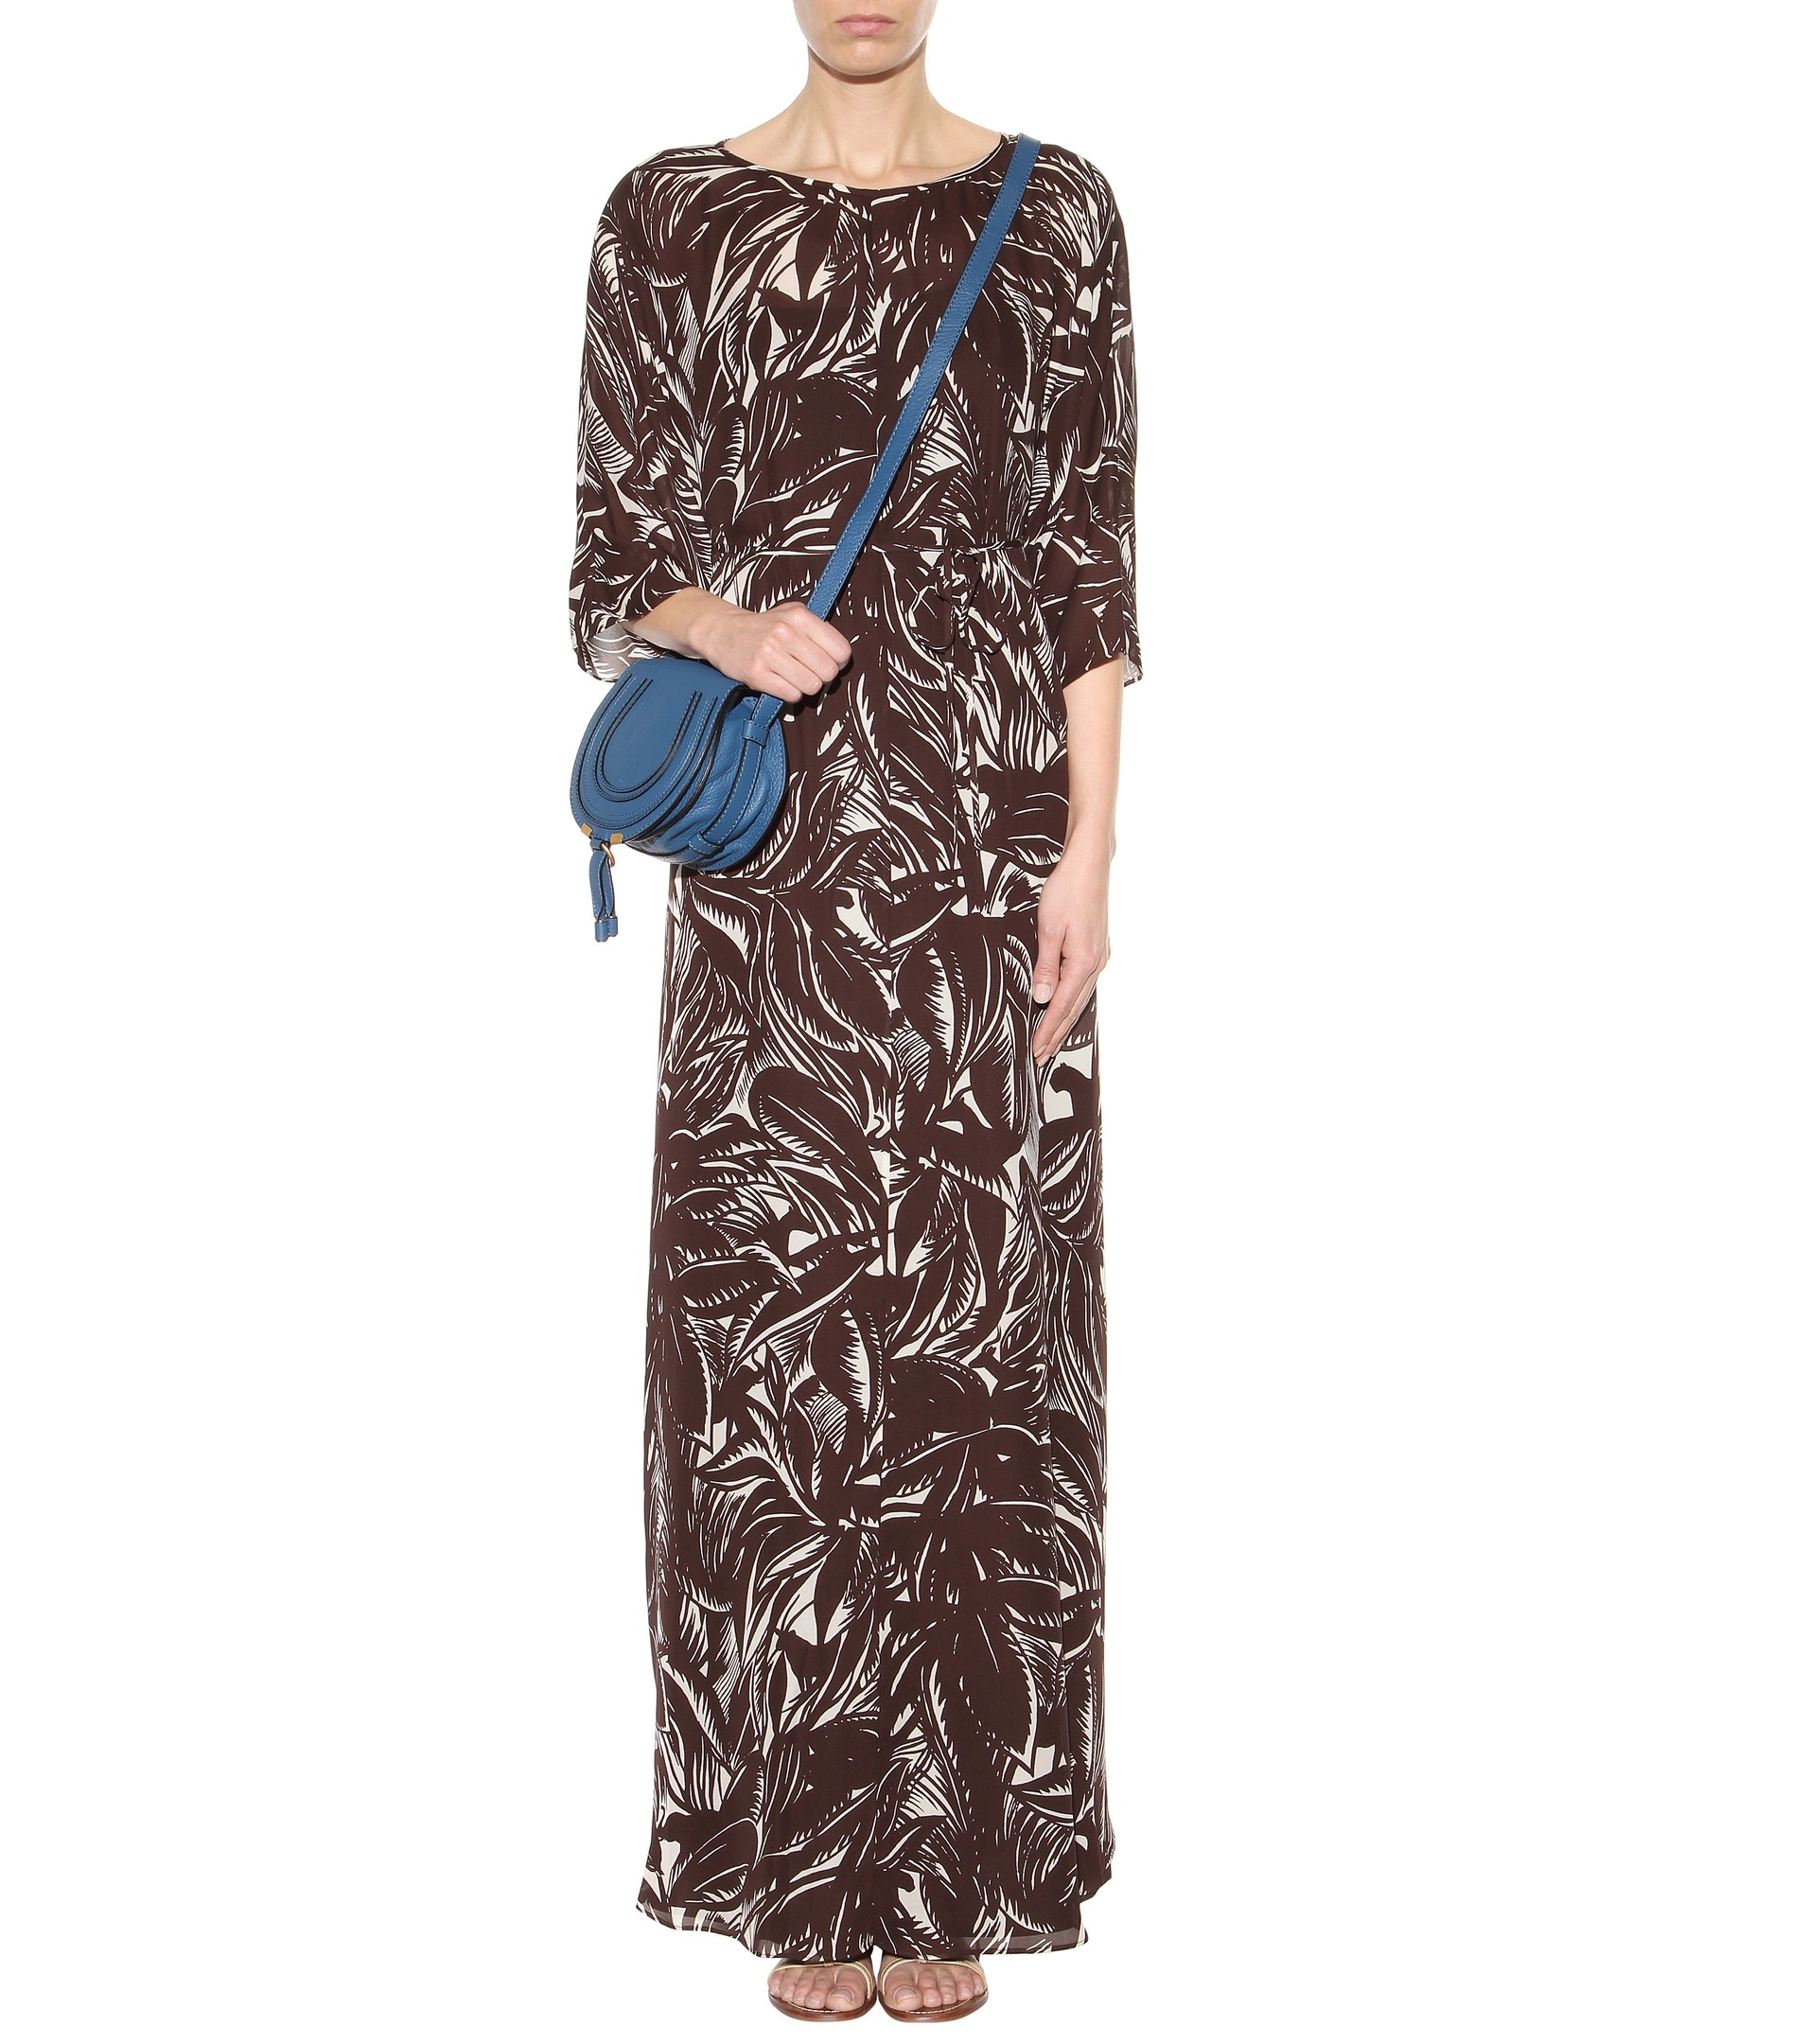 Lyst tory burch printed silk georgette dress in brown for Tory burch fashion island